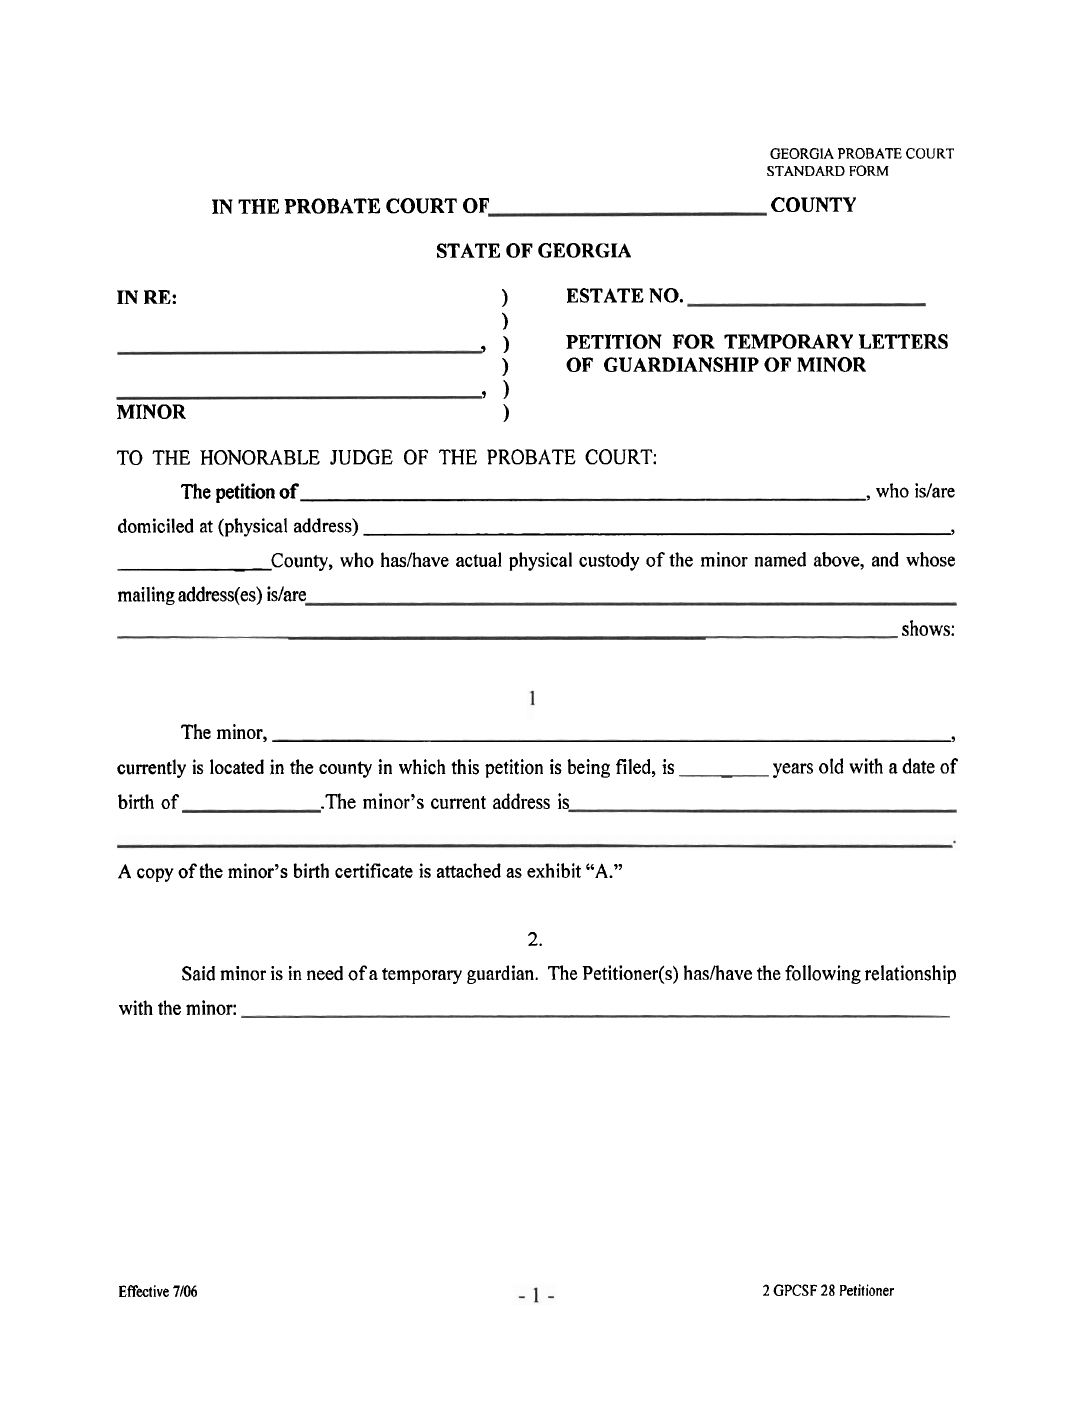 georgia law for dating minors weve been dating for 6 months